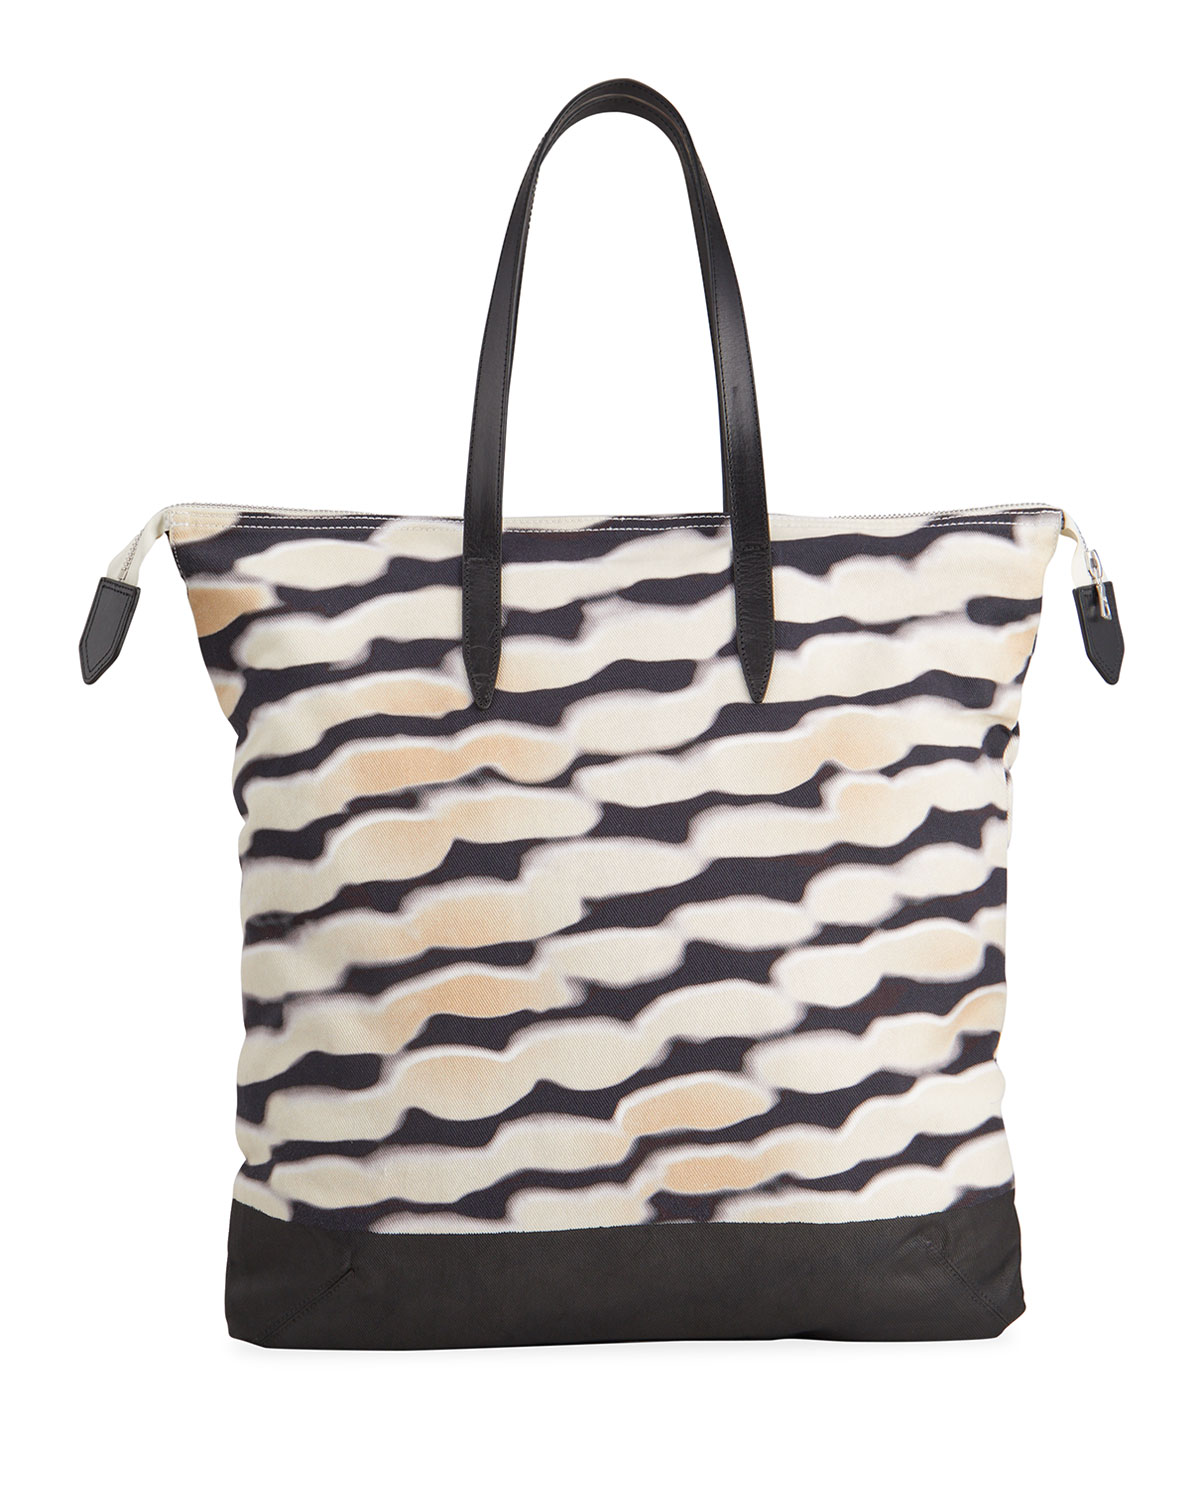 Dries Van Noten MEN'S PRINTED SHOPPING TOTE BAG